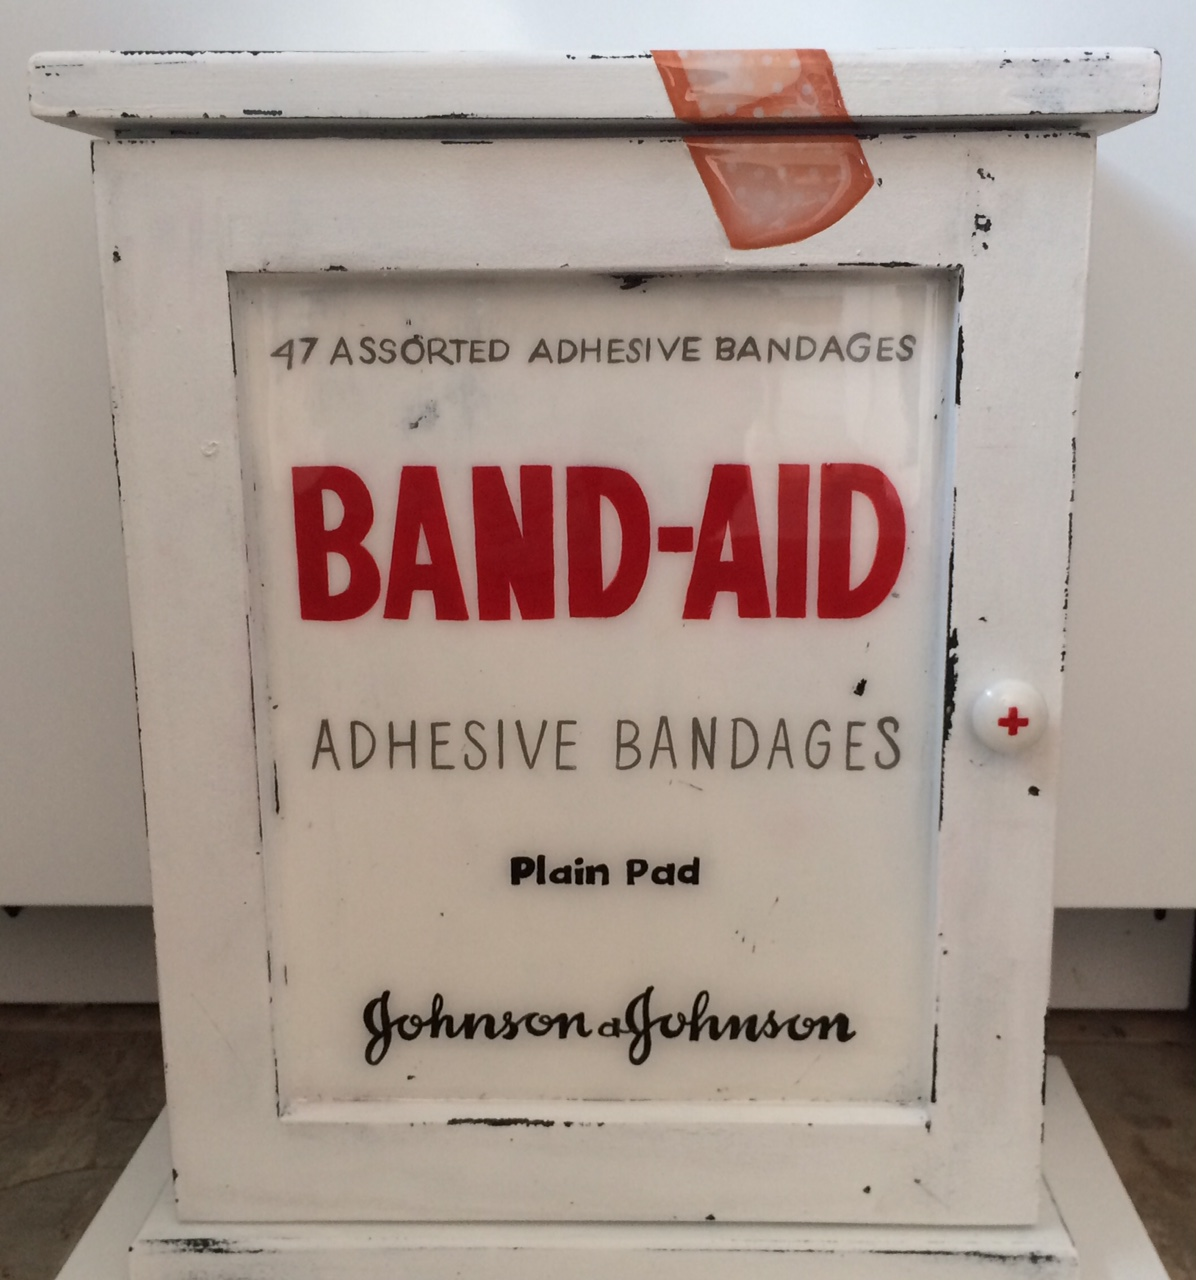 pharmacie-bandaid-3